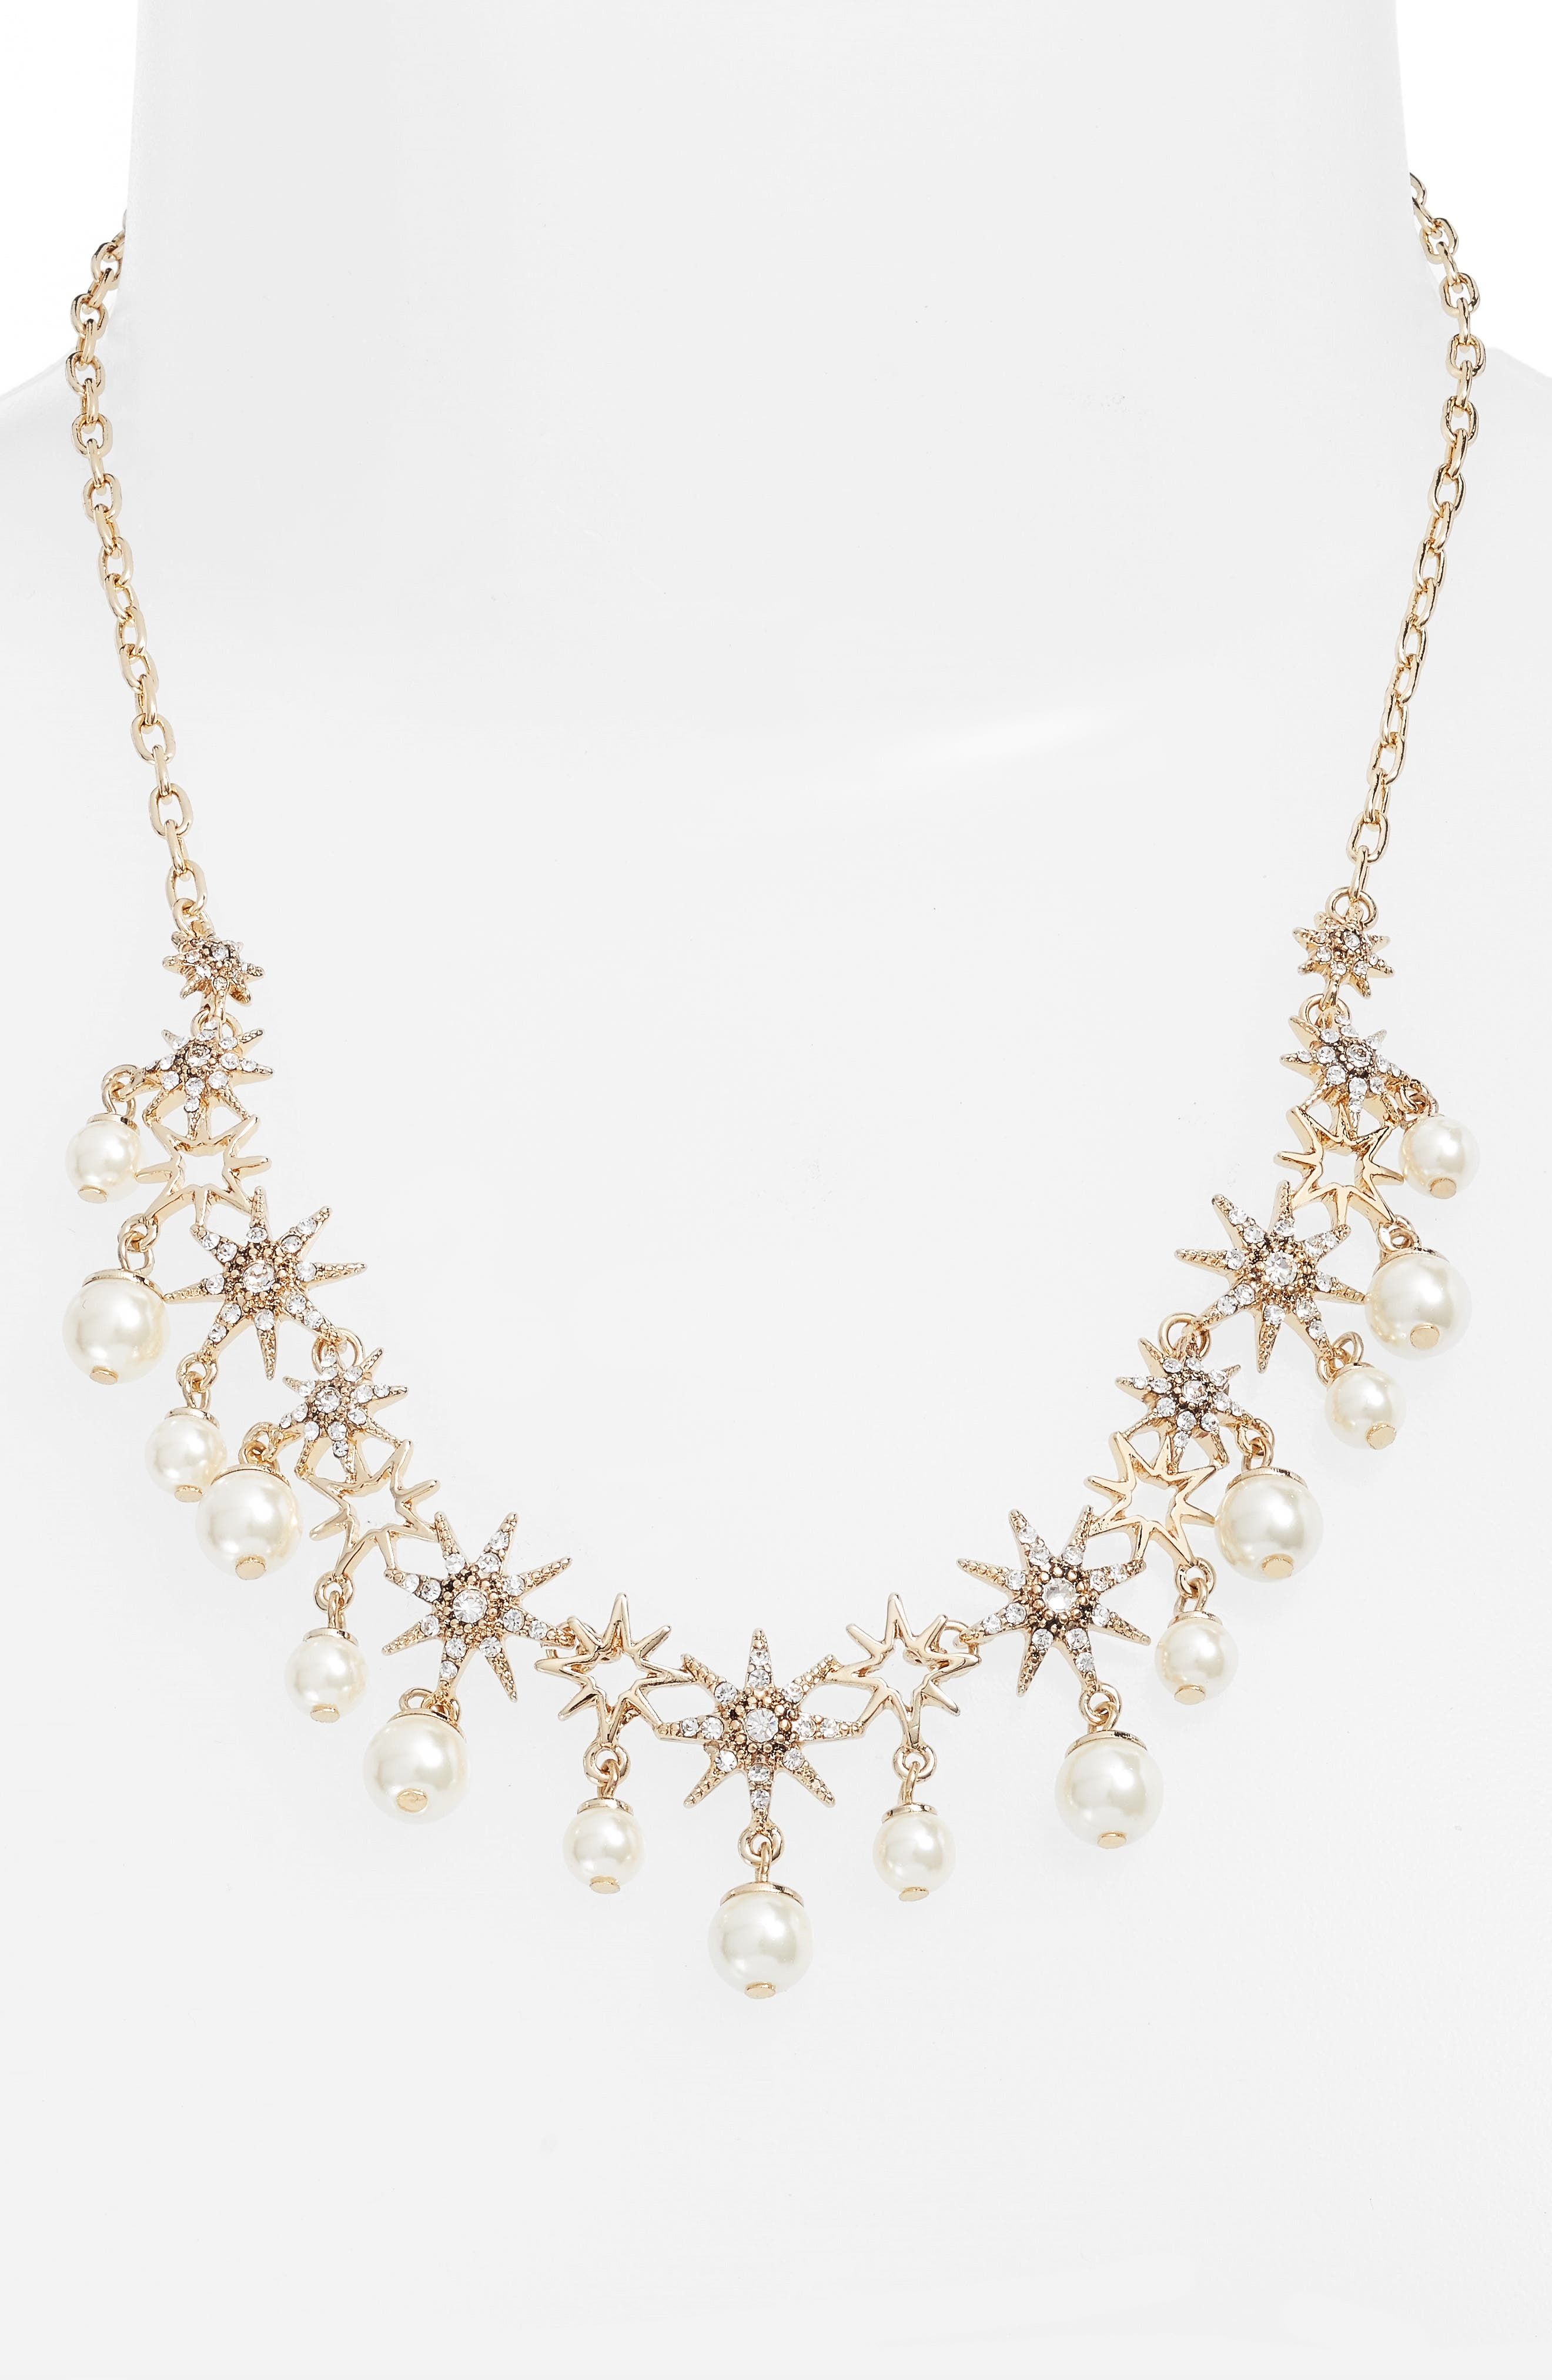 Star Collar Necklace,                         Main,                         color, Gold/ Crystal/ Pearl